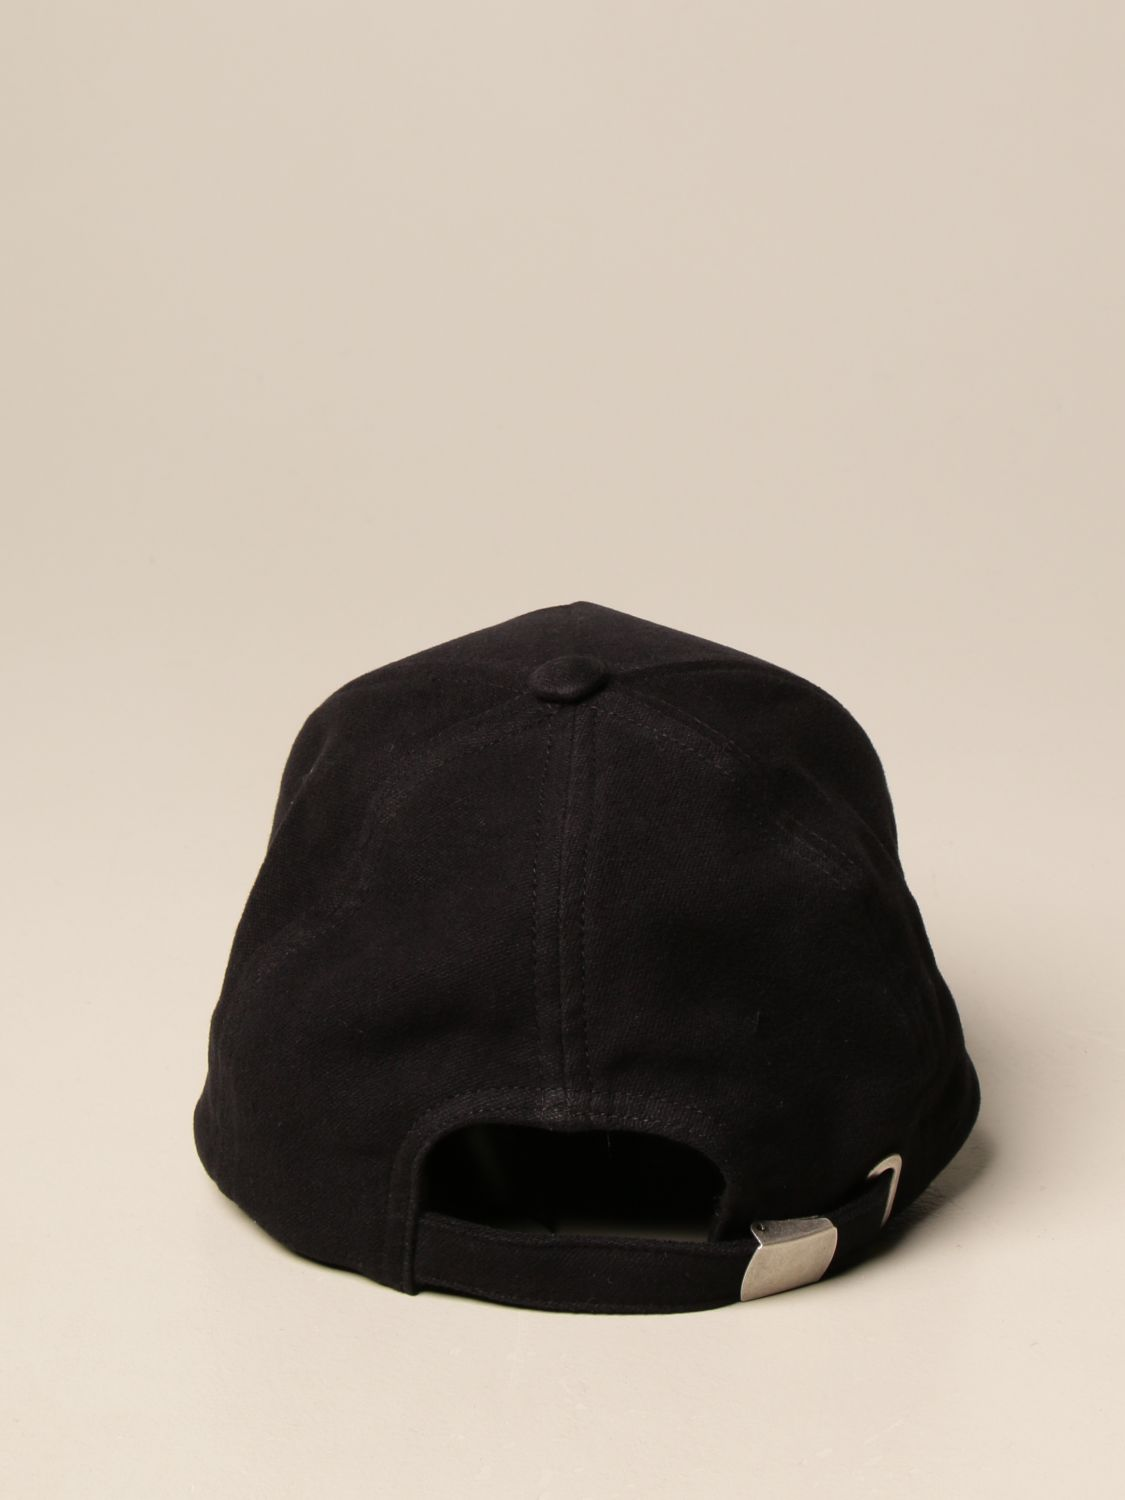 Hat Balmain: Balmain baseball cap with logo black 1 3